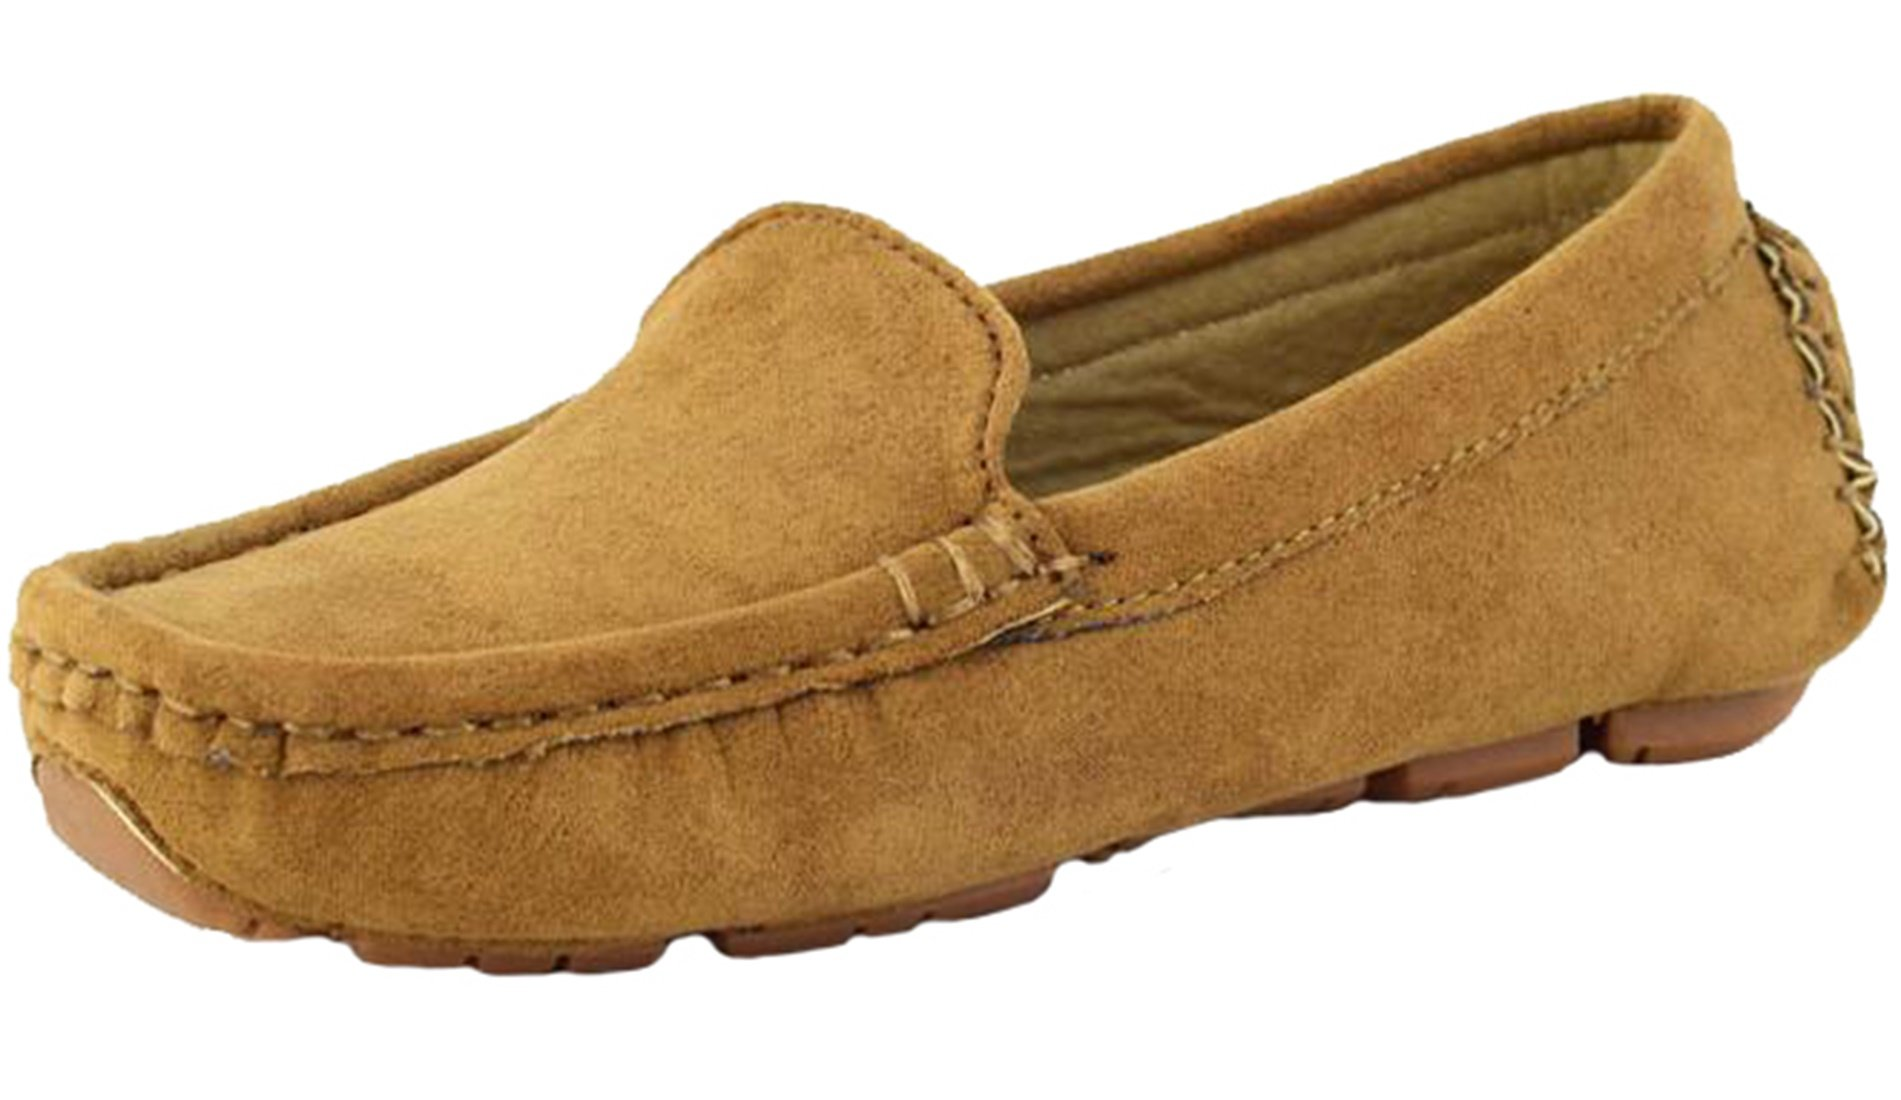 PPXID Girl's Boy's Suede Slip-on Loafers Casual Shoes(Toddler/Little Kid/Big Kid)-Brown 7 US Size